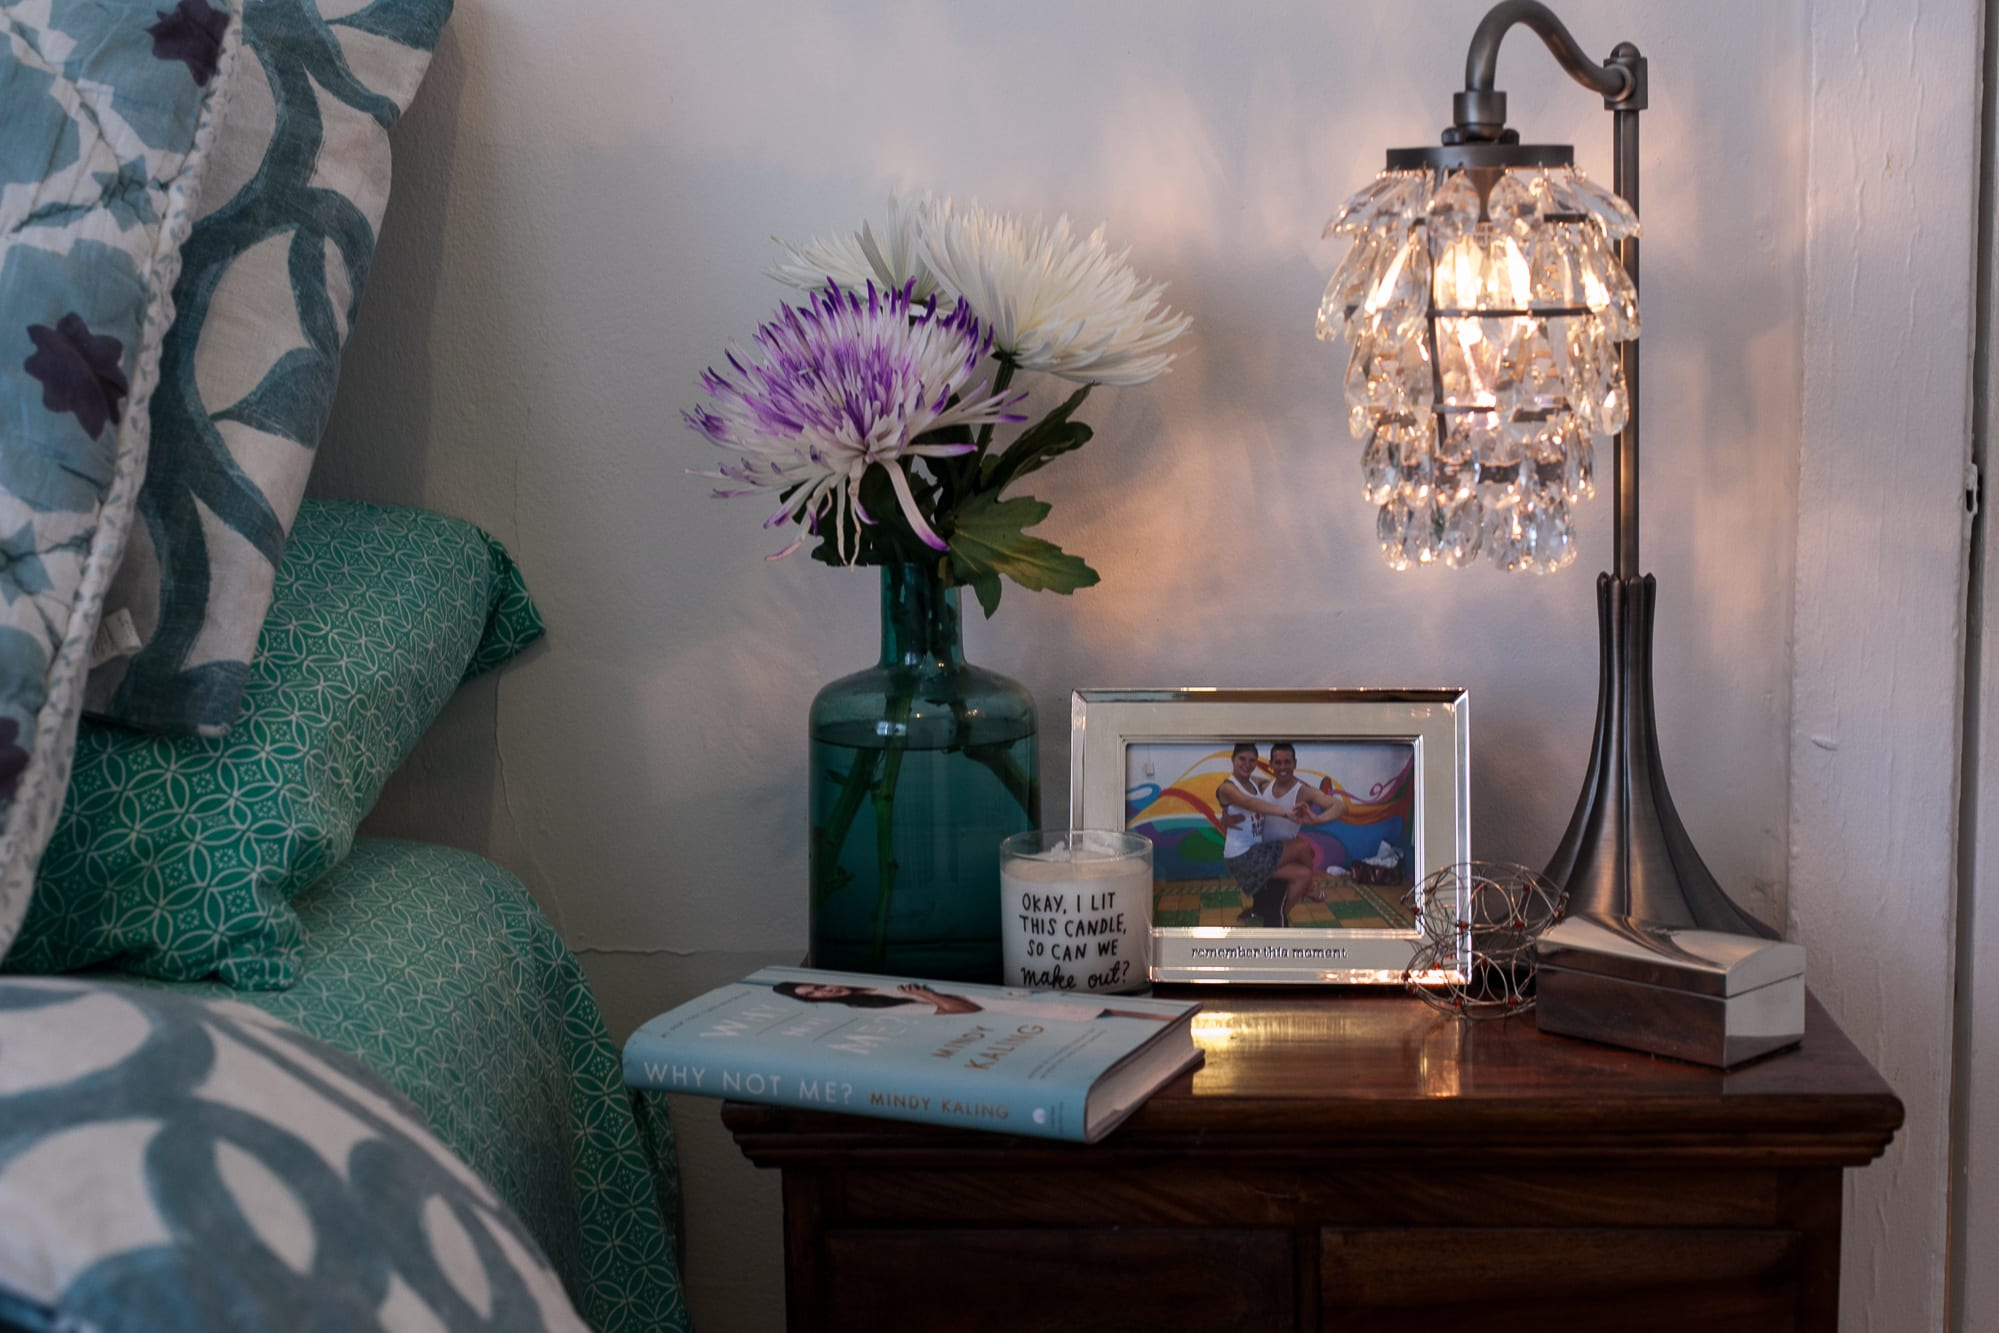 A tour of my teal and white boho bedroom. My boho bedroom in blue    Choosing Figs